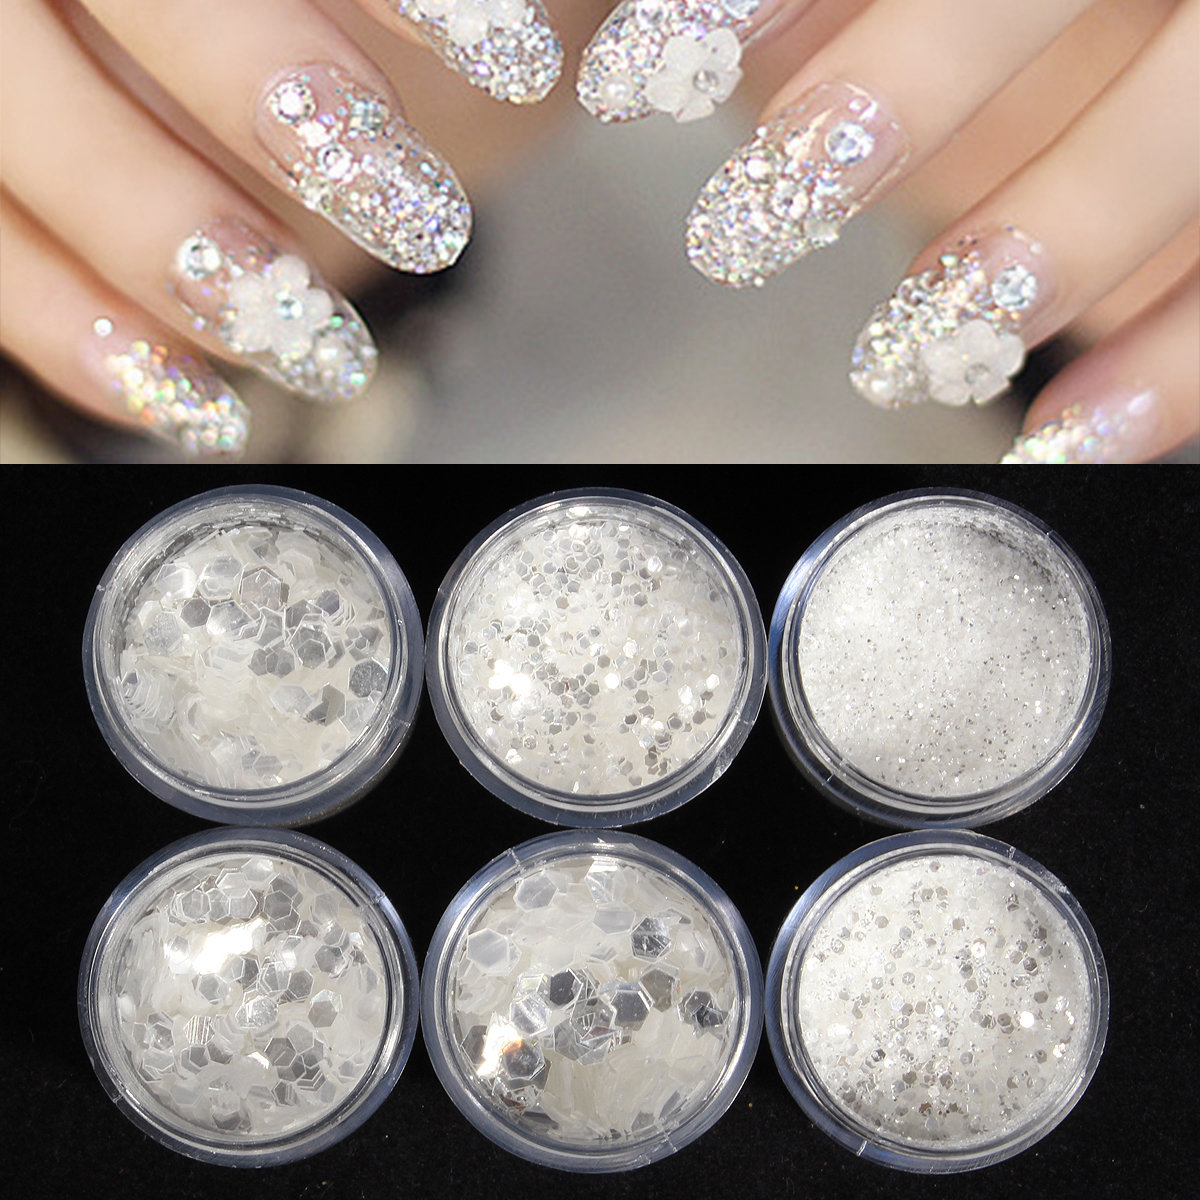 6 Boxes/Set Nail Art Glitter Powder Dust Sequin White Silver Manicure  Decoration - 6 Boxes/Set Nail Art Glitter Powder Dust Sequin White Silver